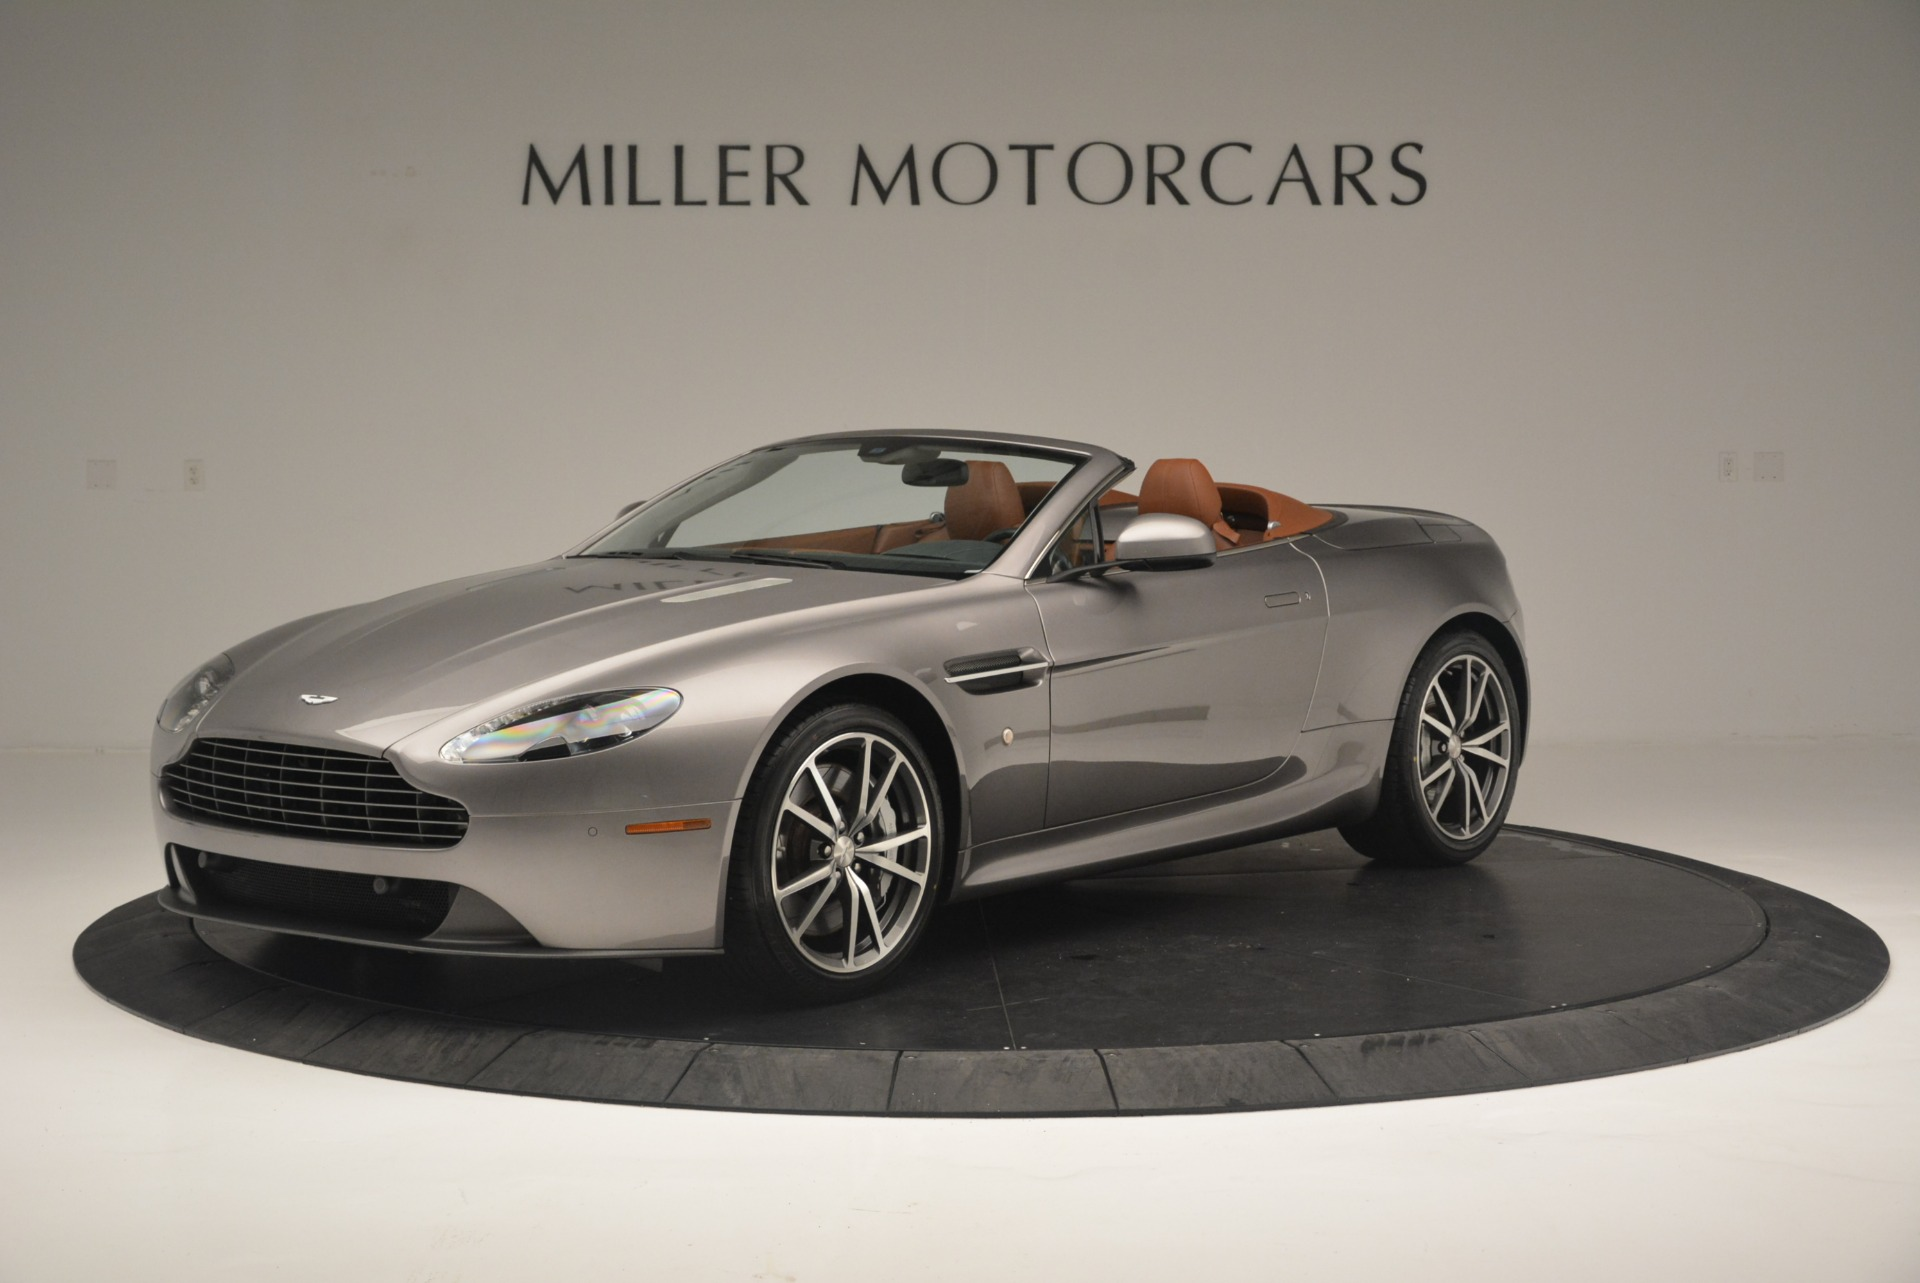 Used 2015 Aston Martin V8 Vantage Roadster for sale Sold at Bentley Greenwich in Greenwich CT 06830 1